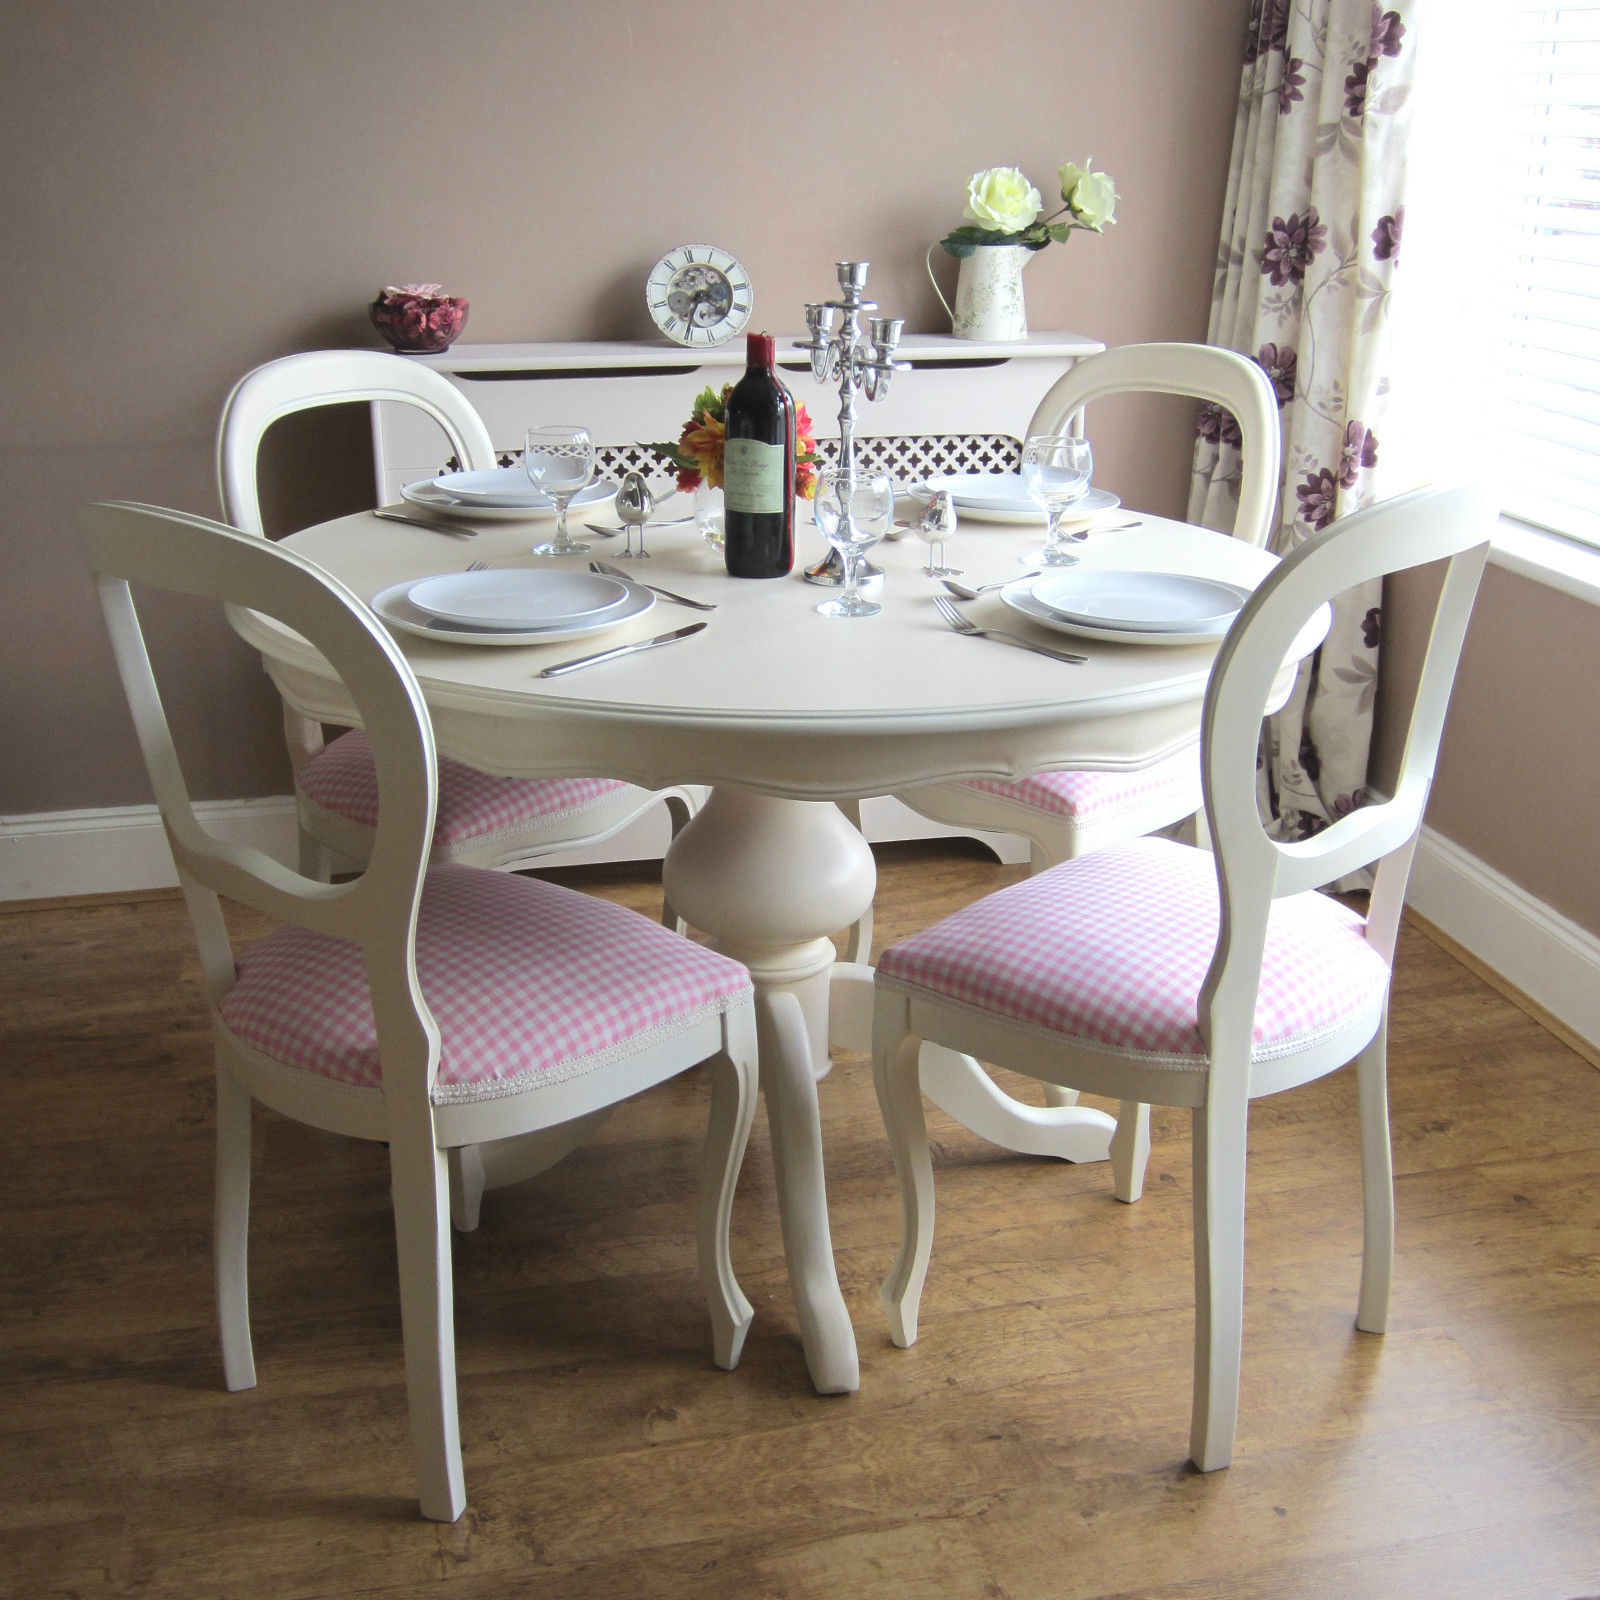 Table And Chairs: Beautiful White Round Kitchen Table And Chairs